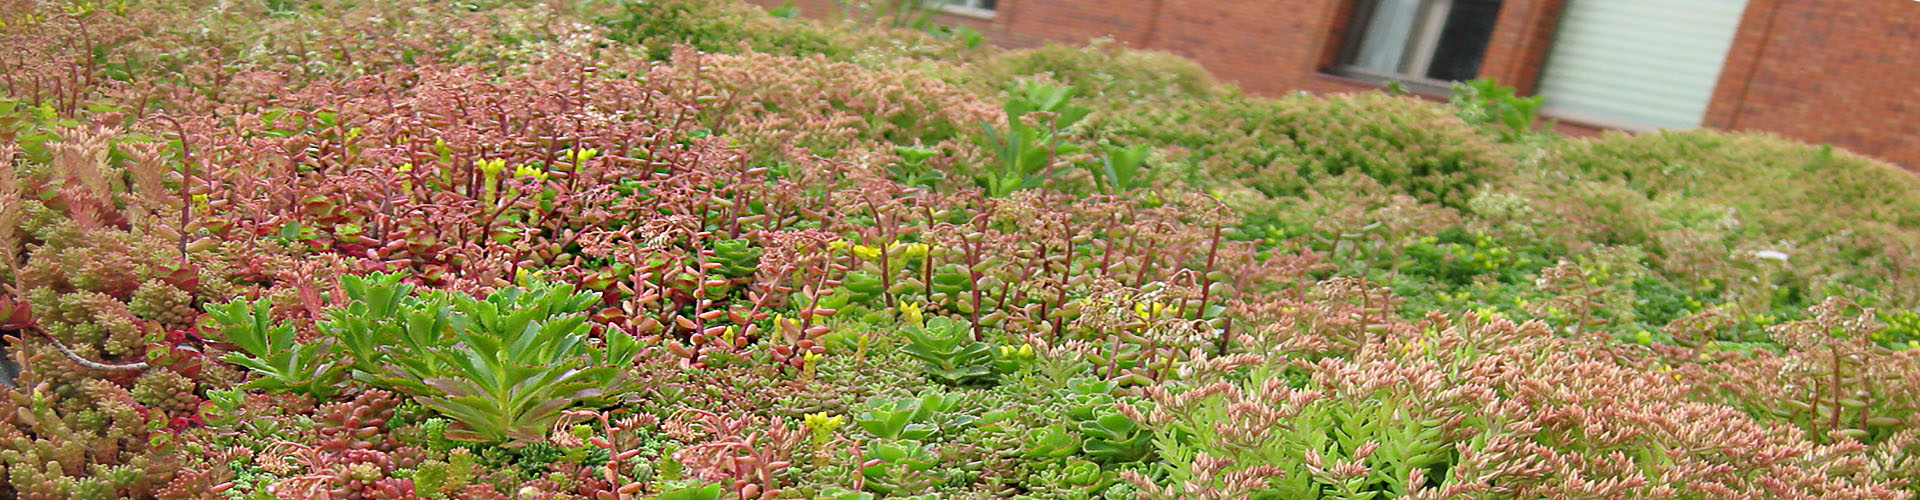 0b Subsub Type Sedum Mix 1929x500 d